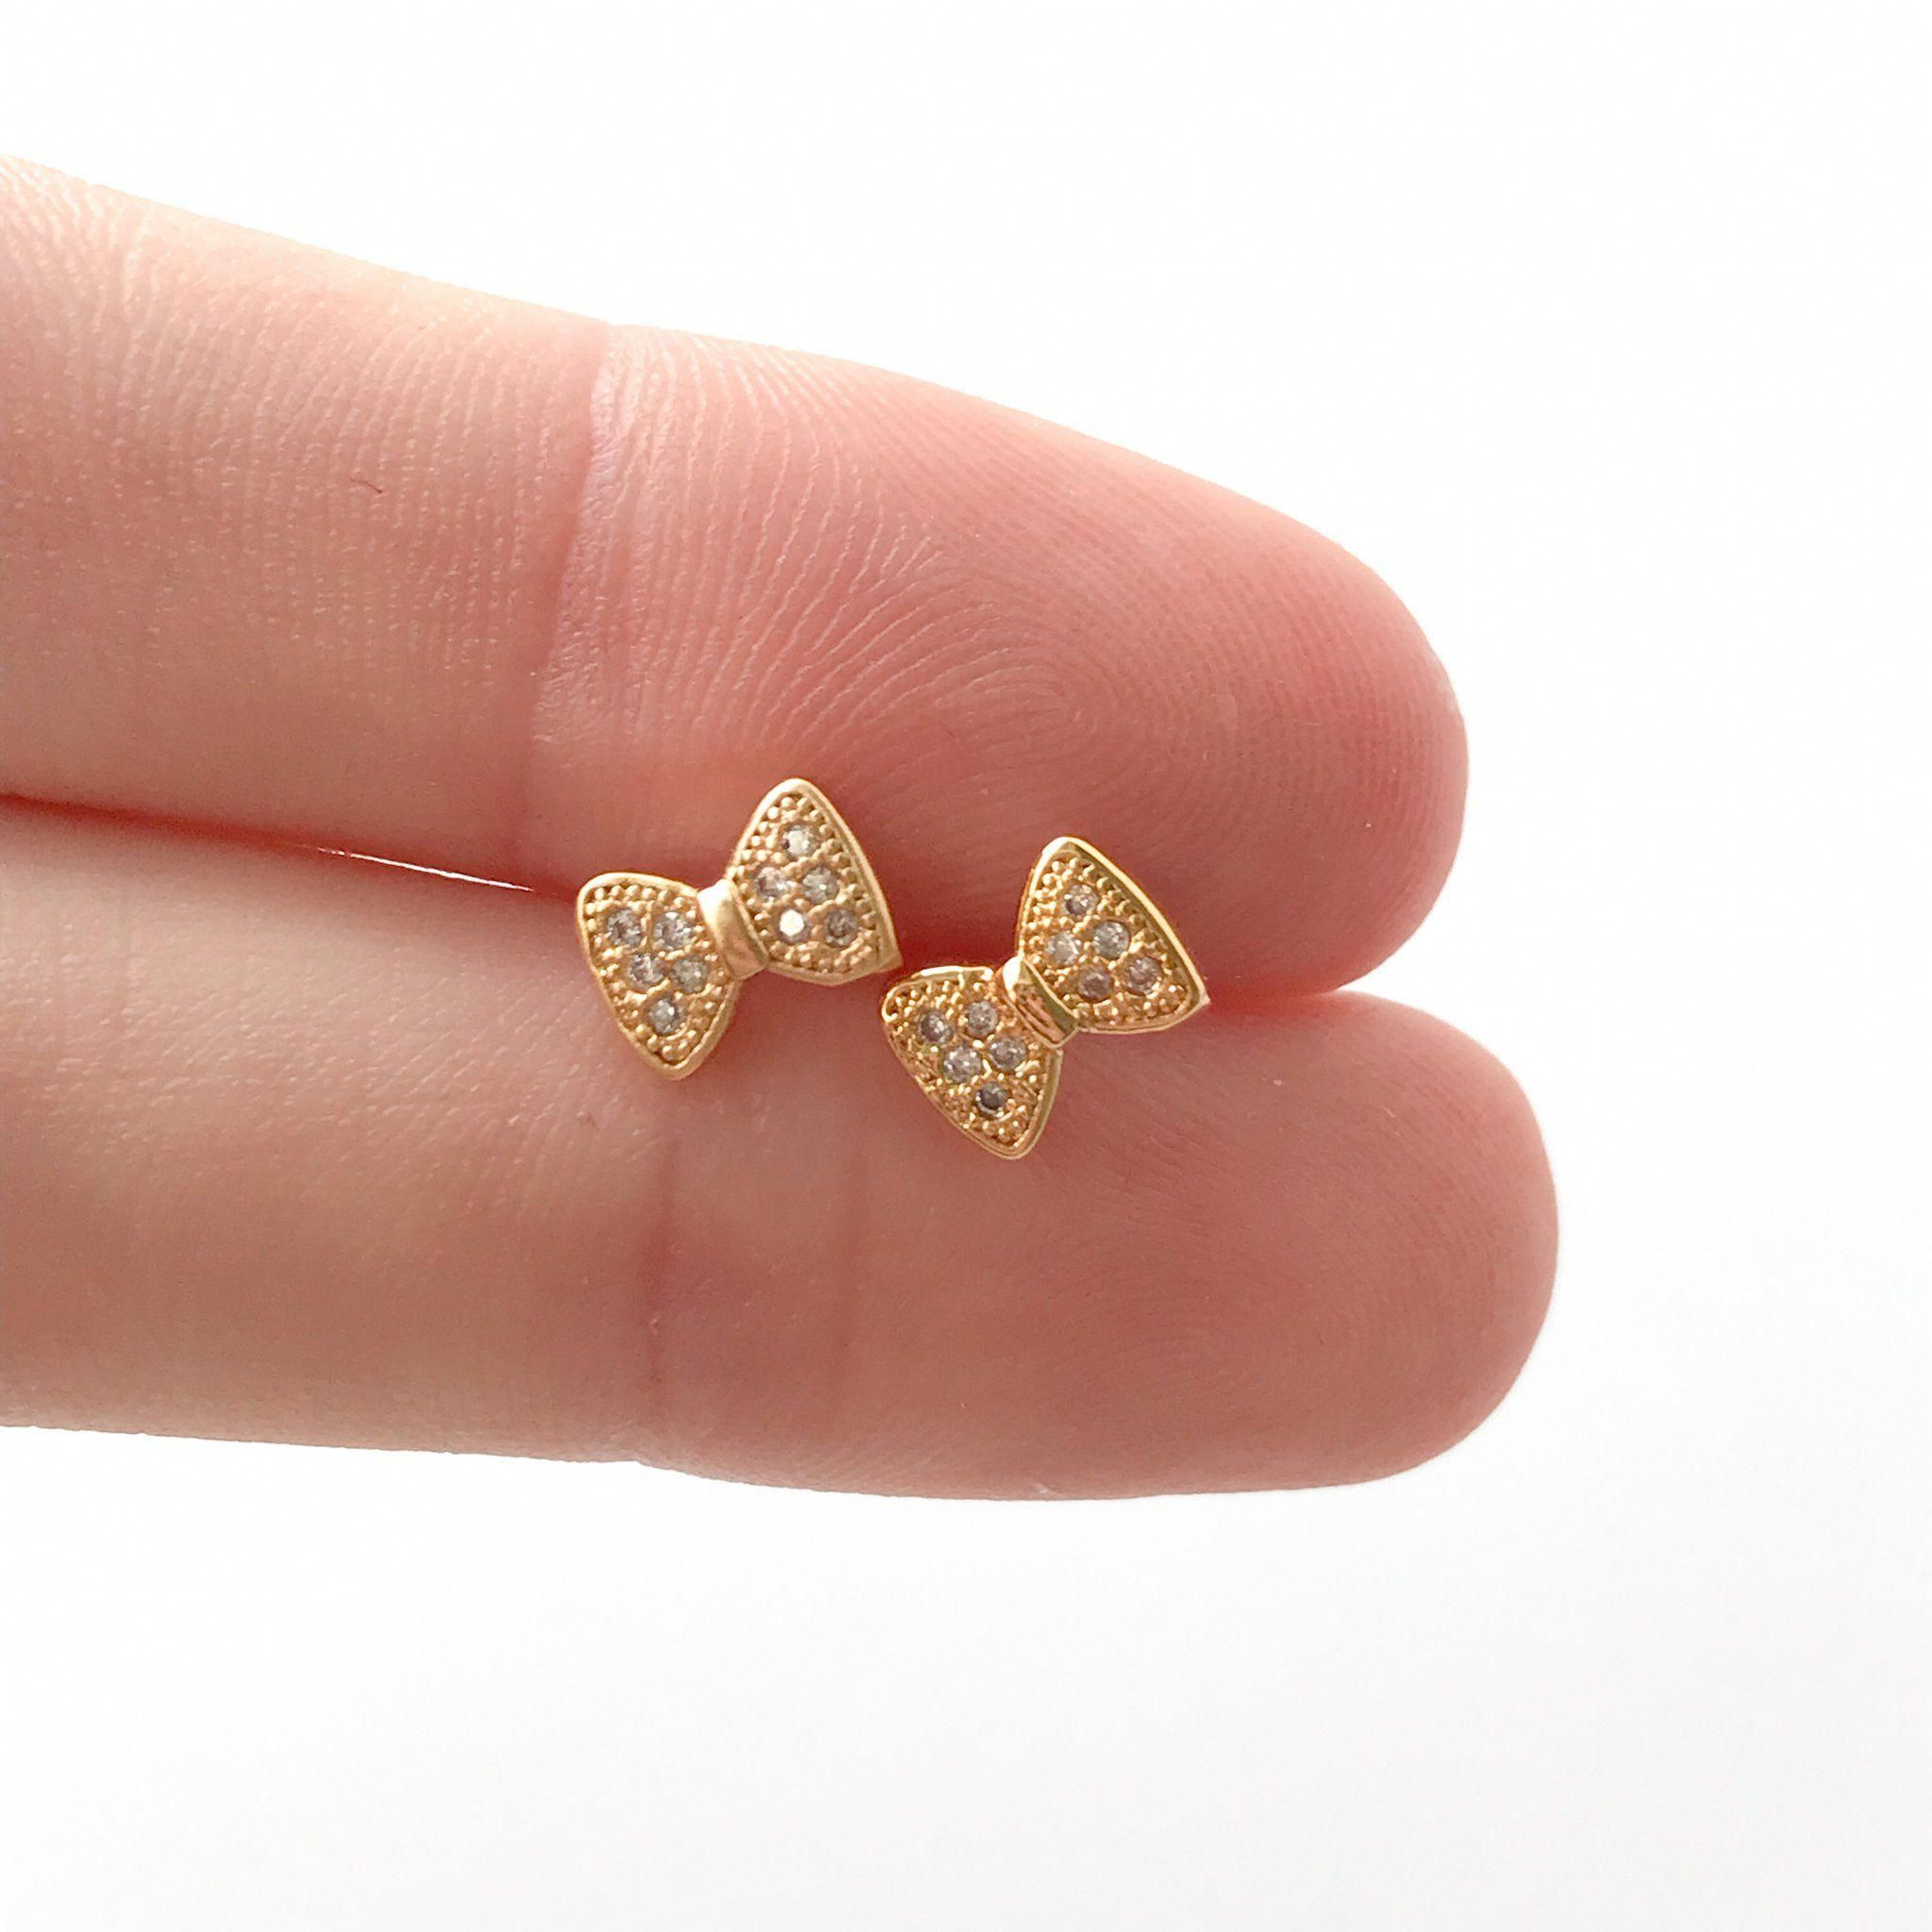 Jewel Tie Solid 14K Yellow Gold Fancy Heart Stud Earrings 6 X 9mm